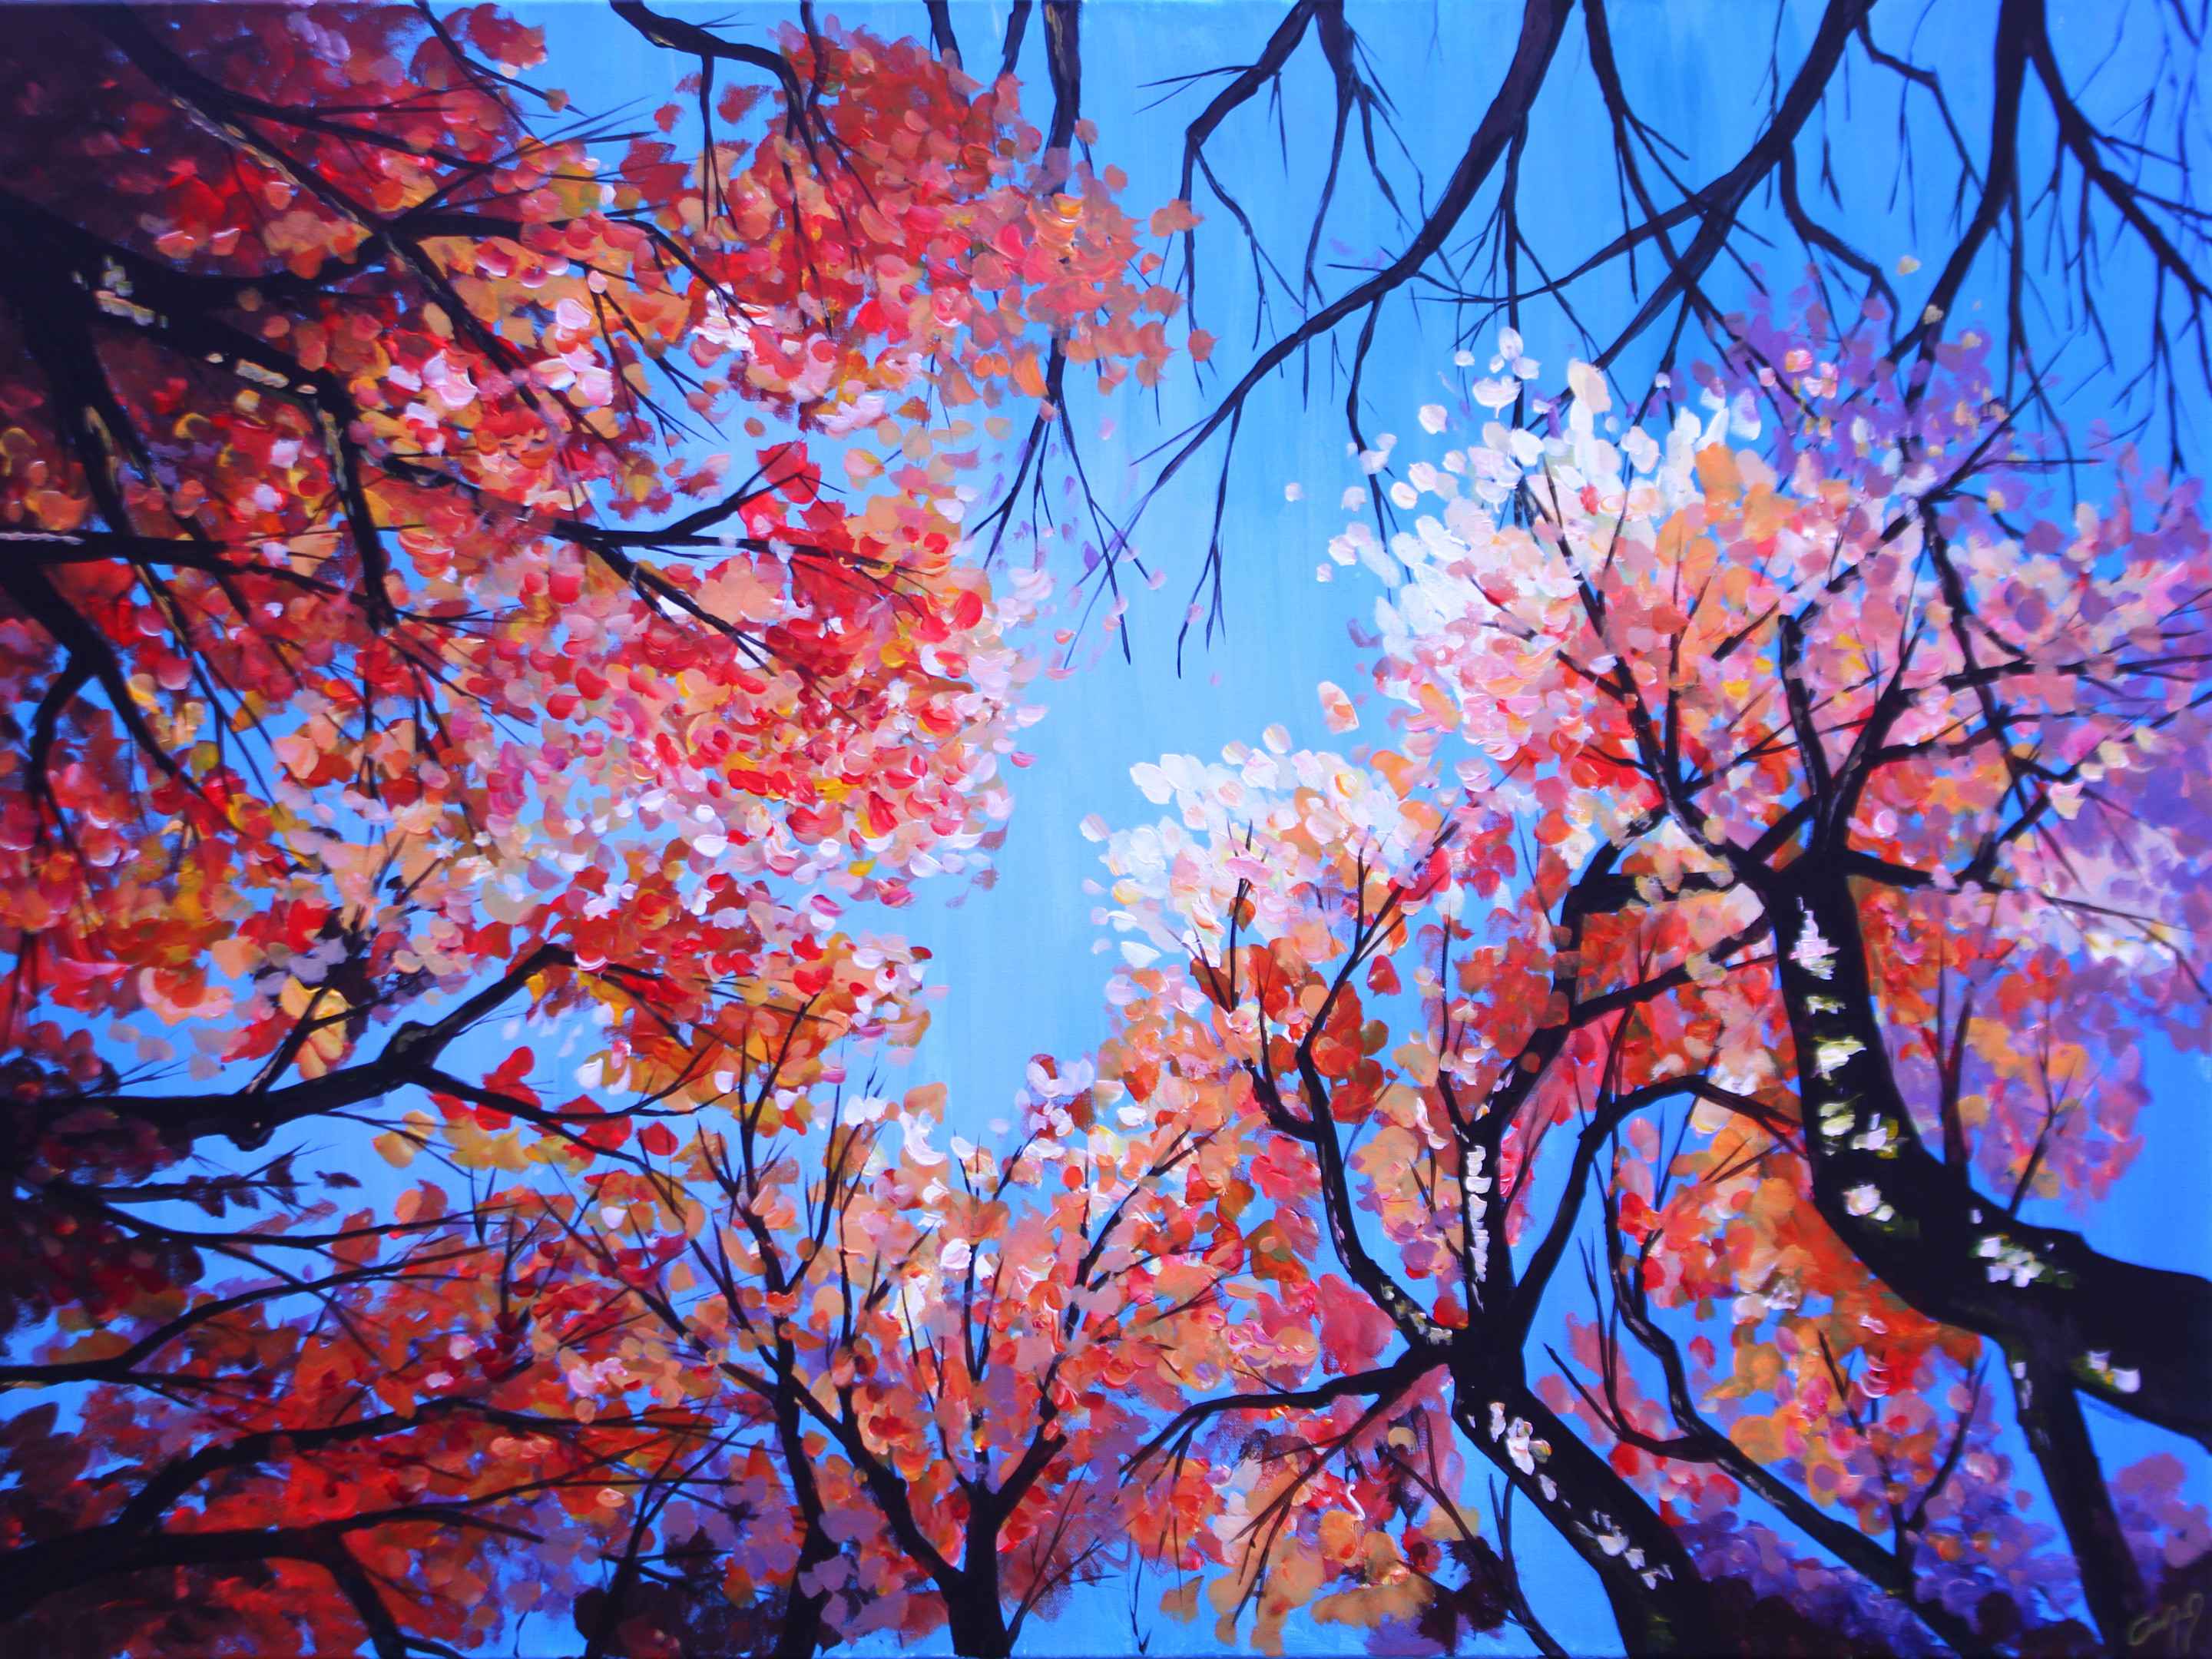 Commissioned acrylic painting of trees in the fall.